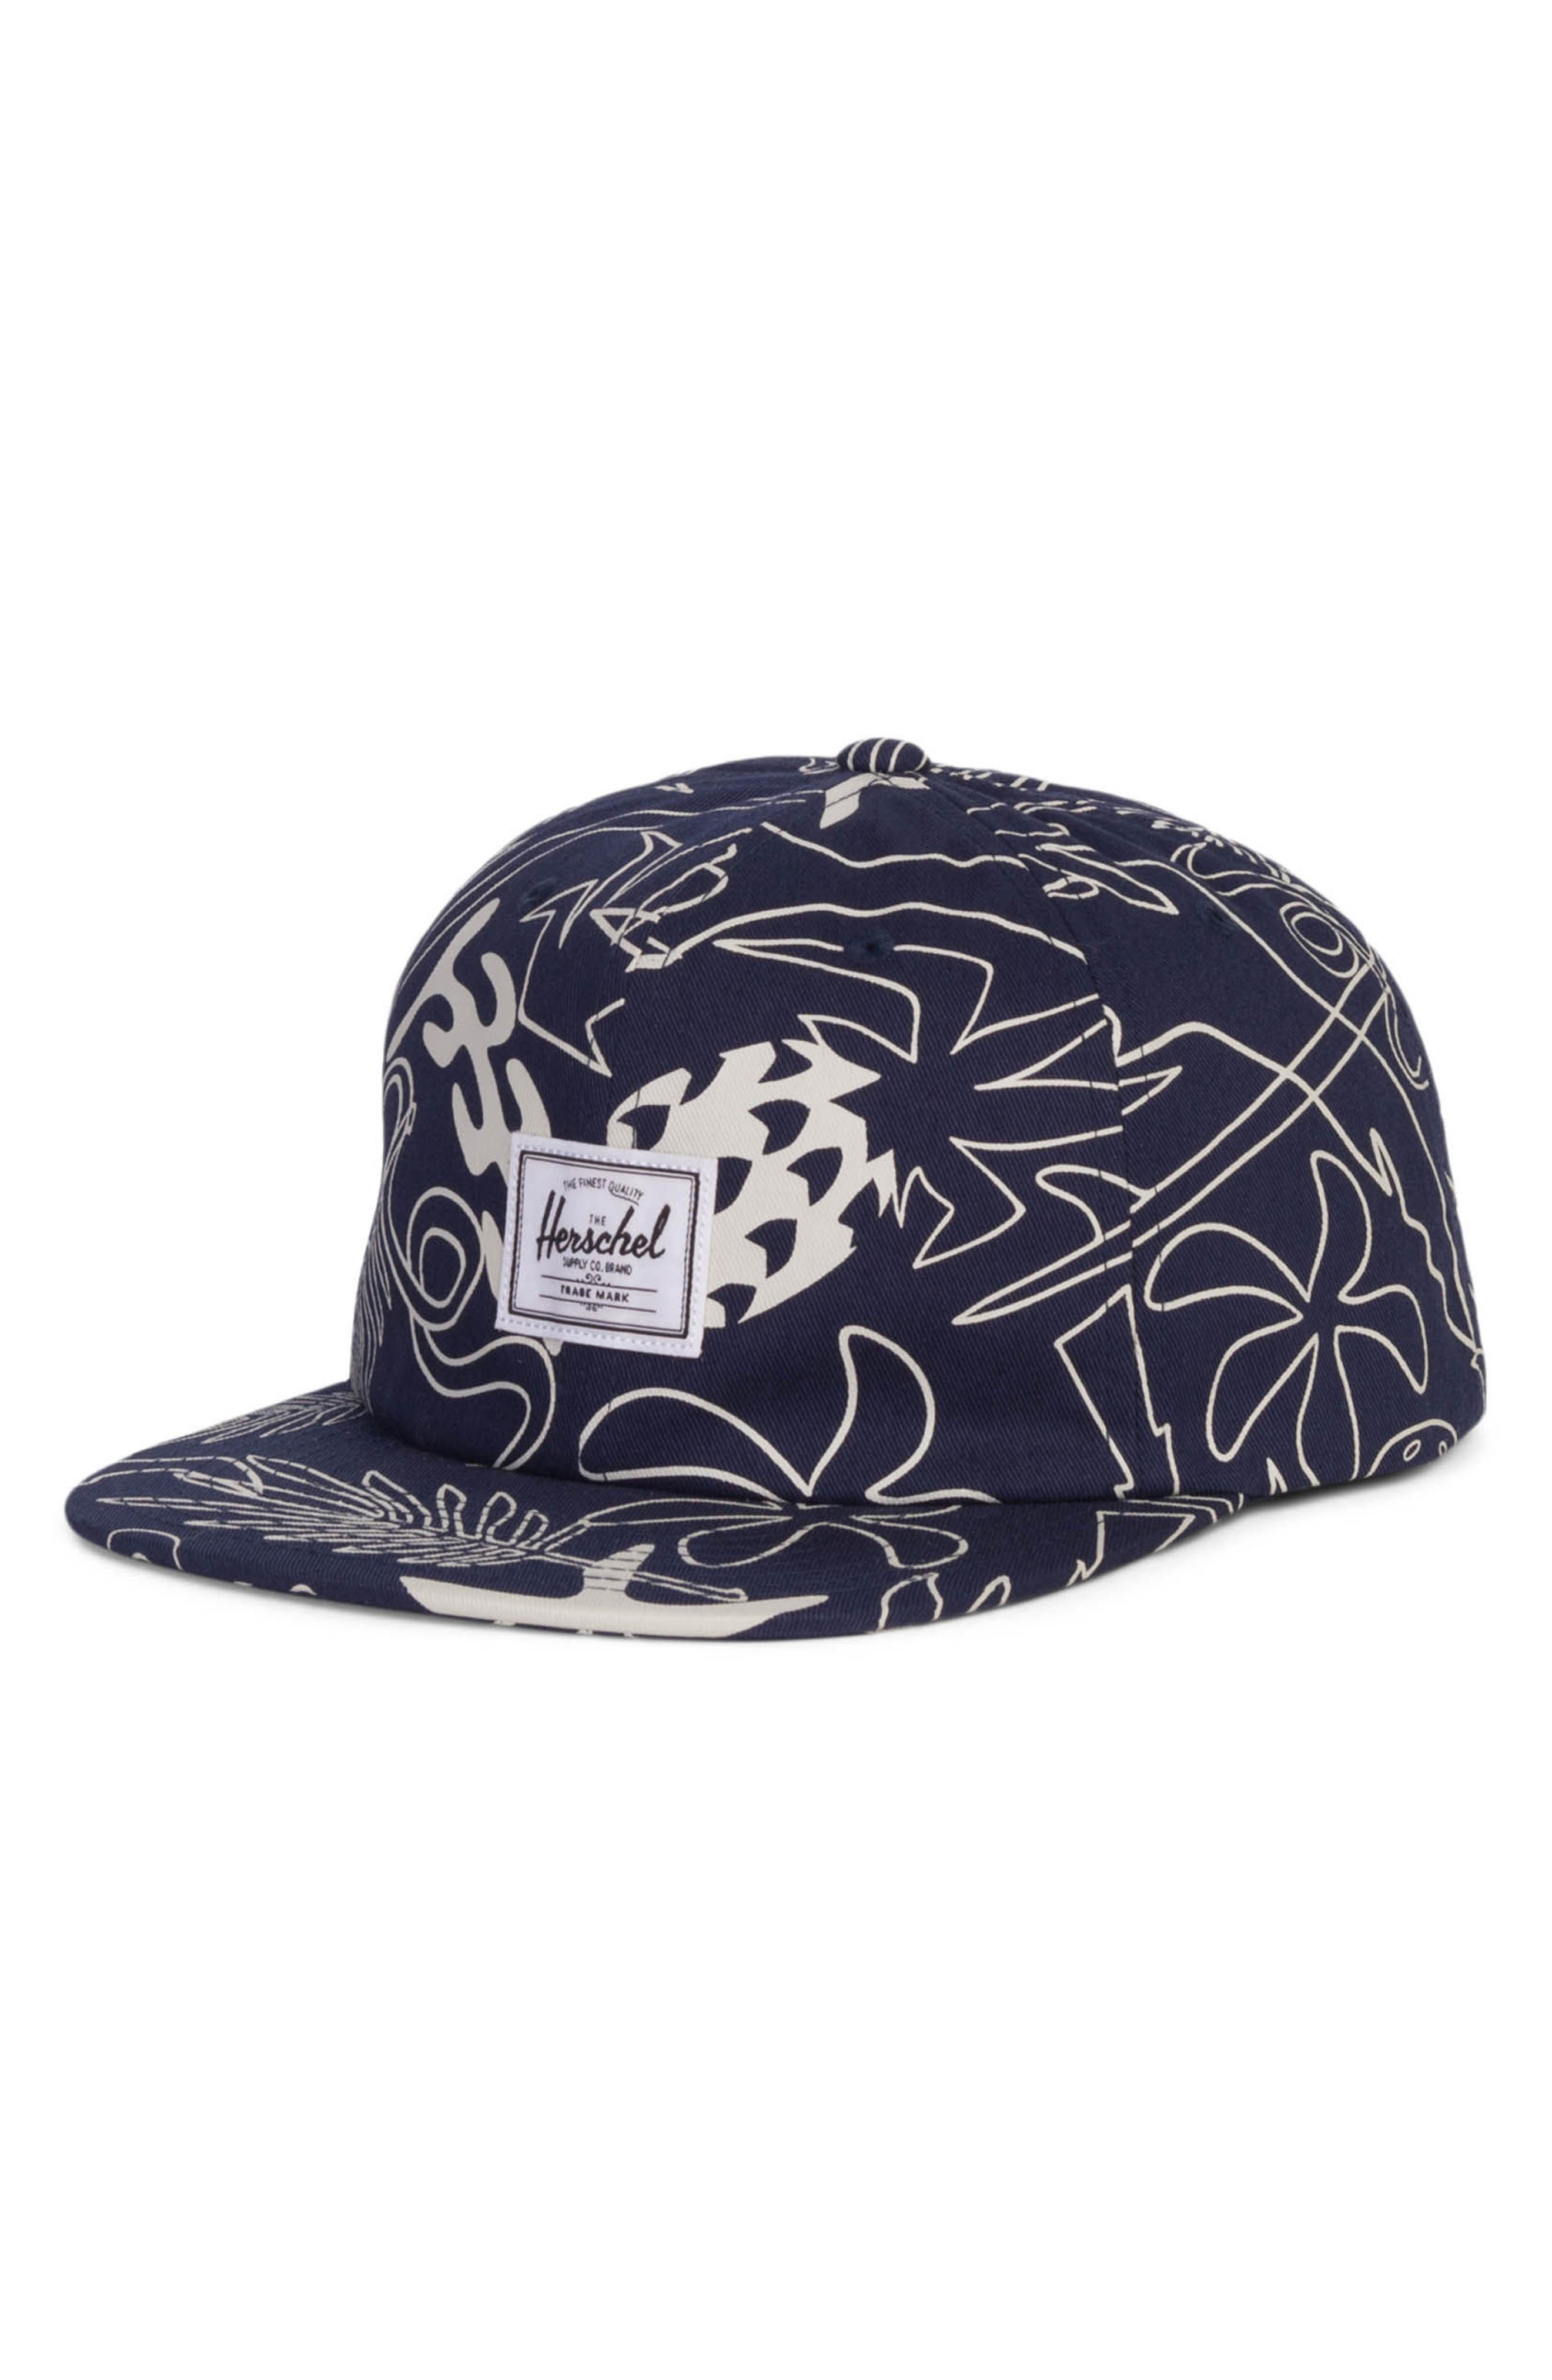 Albert Baseball Cap,                             Main thumbnail 1, color,                             Abstract Island